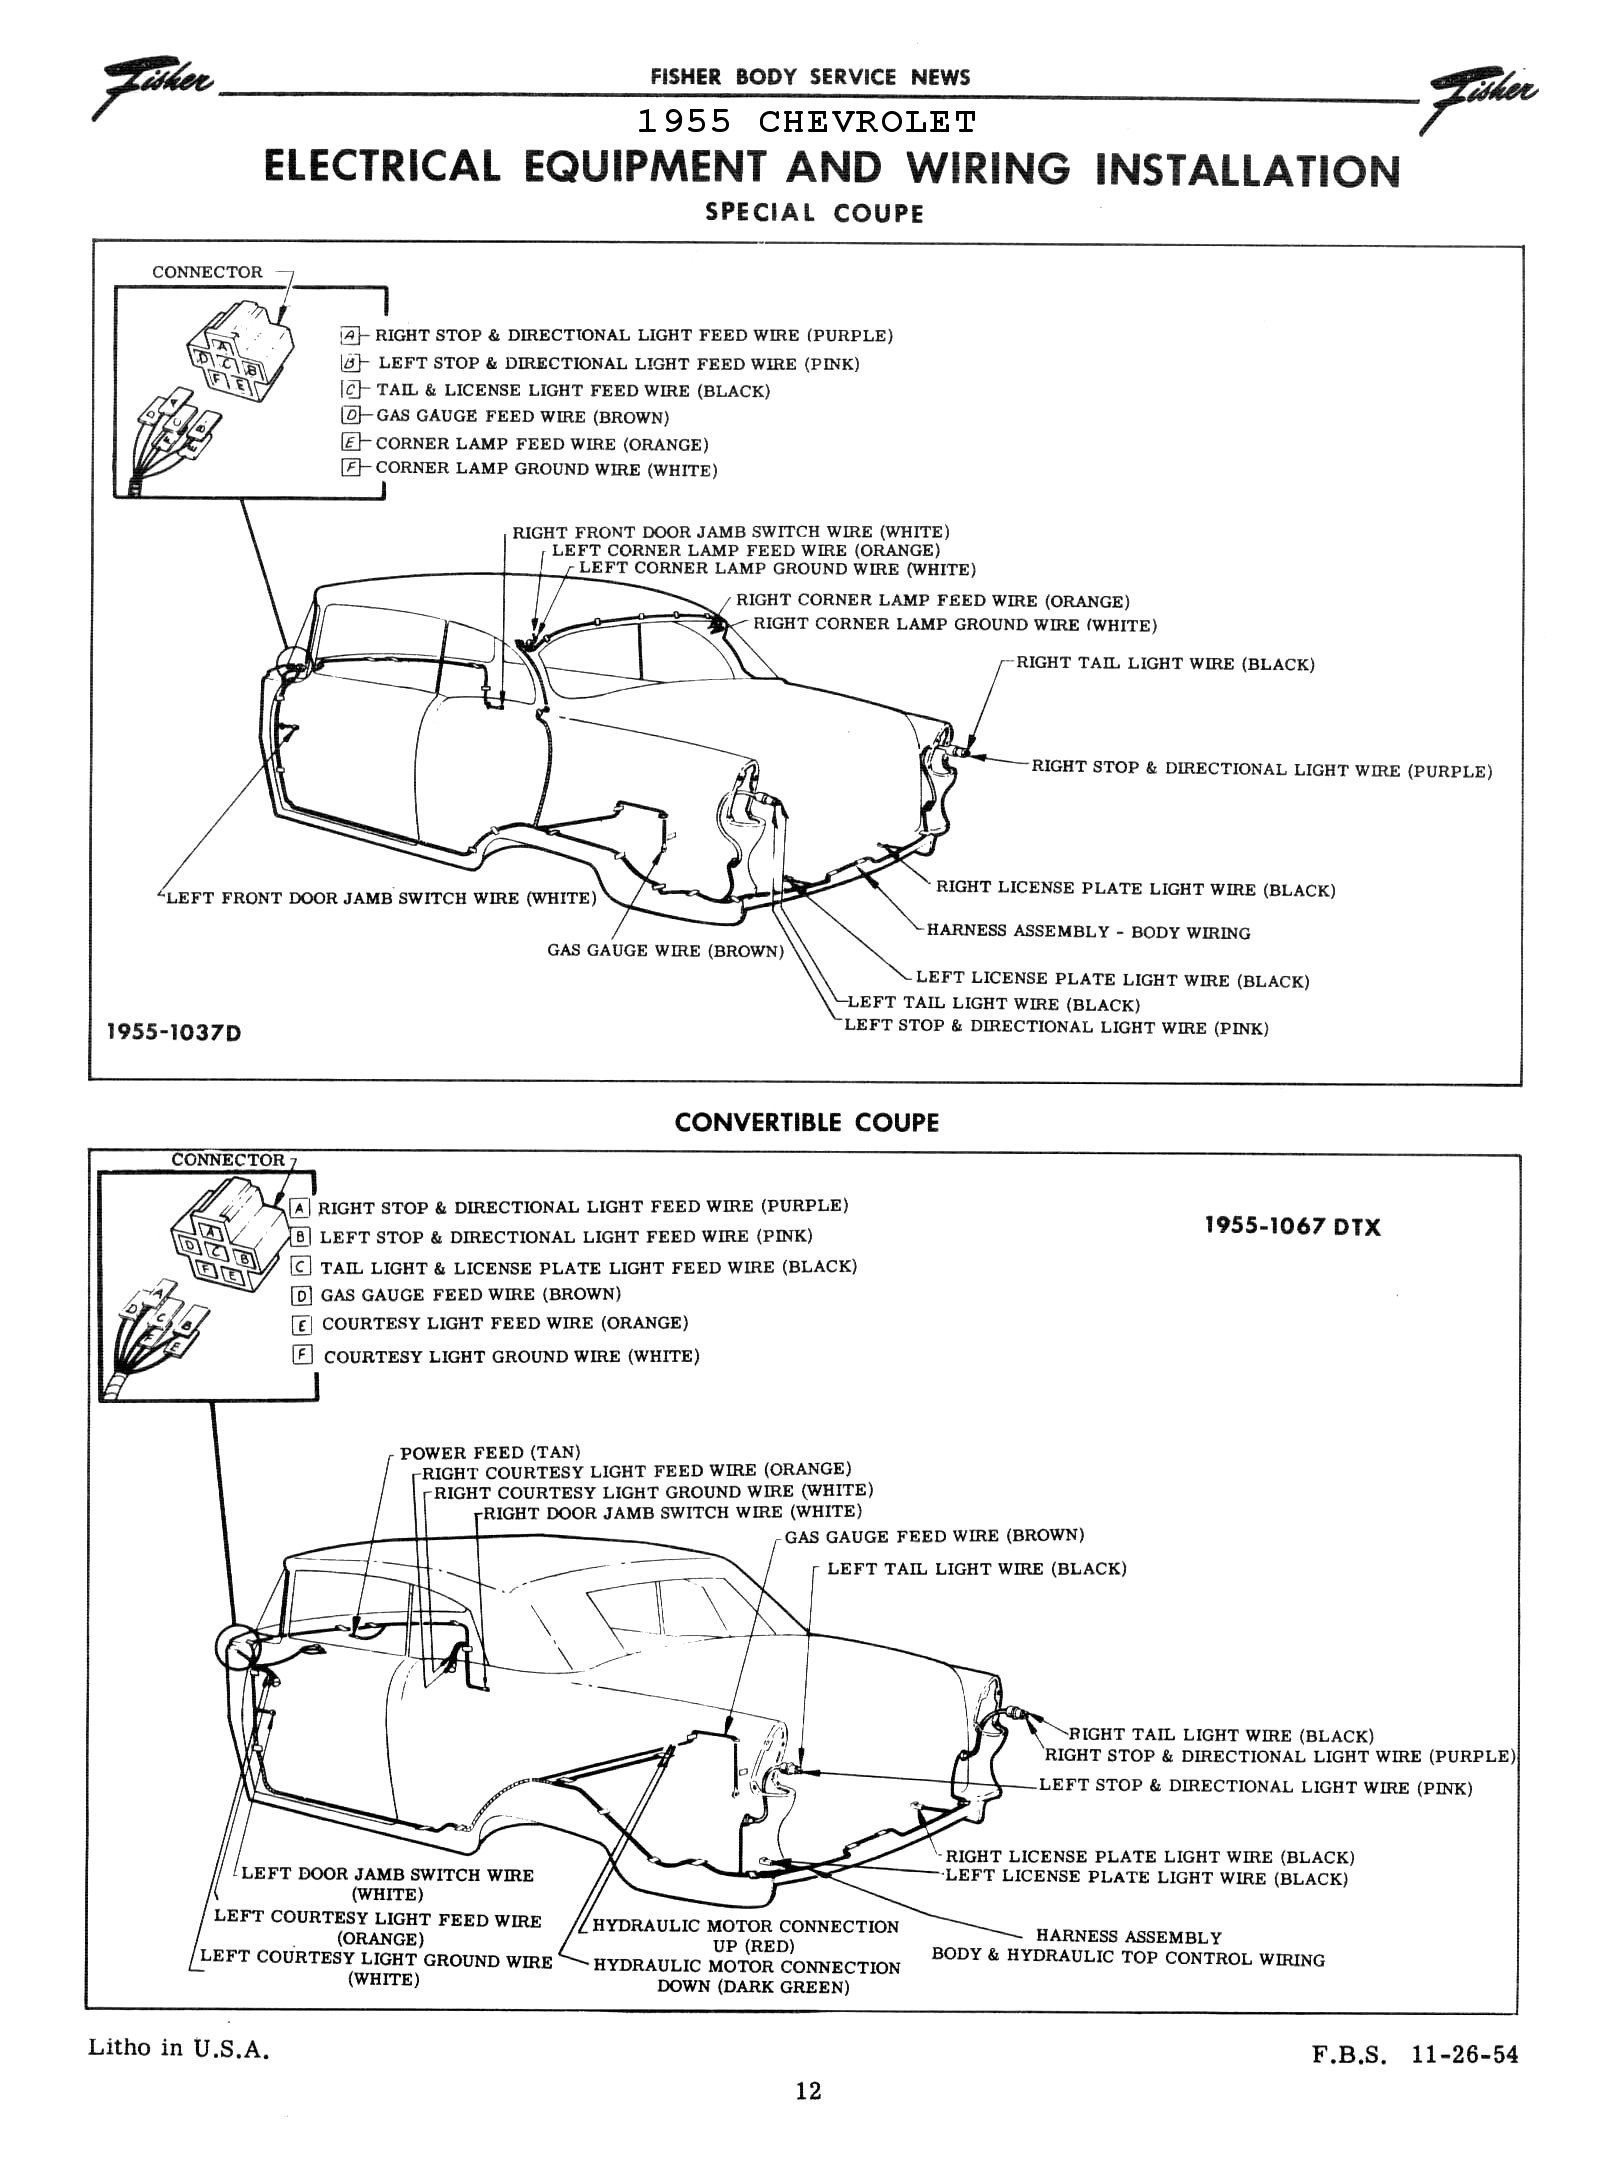 55fsn140612 chevy wiring diagrams 1953 chevy bel air wiring diagram at reclaimingppi.co